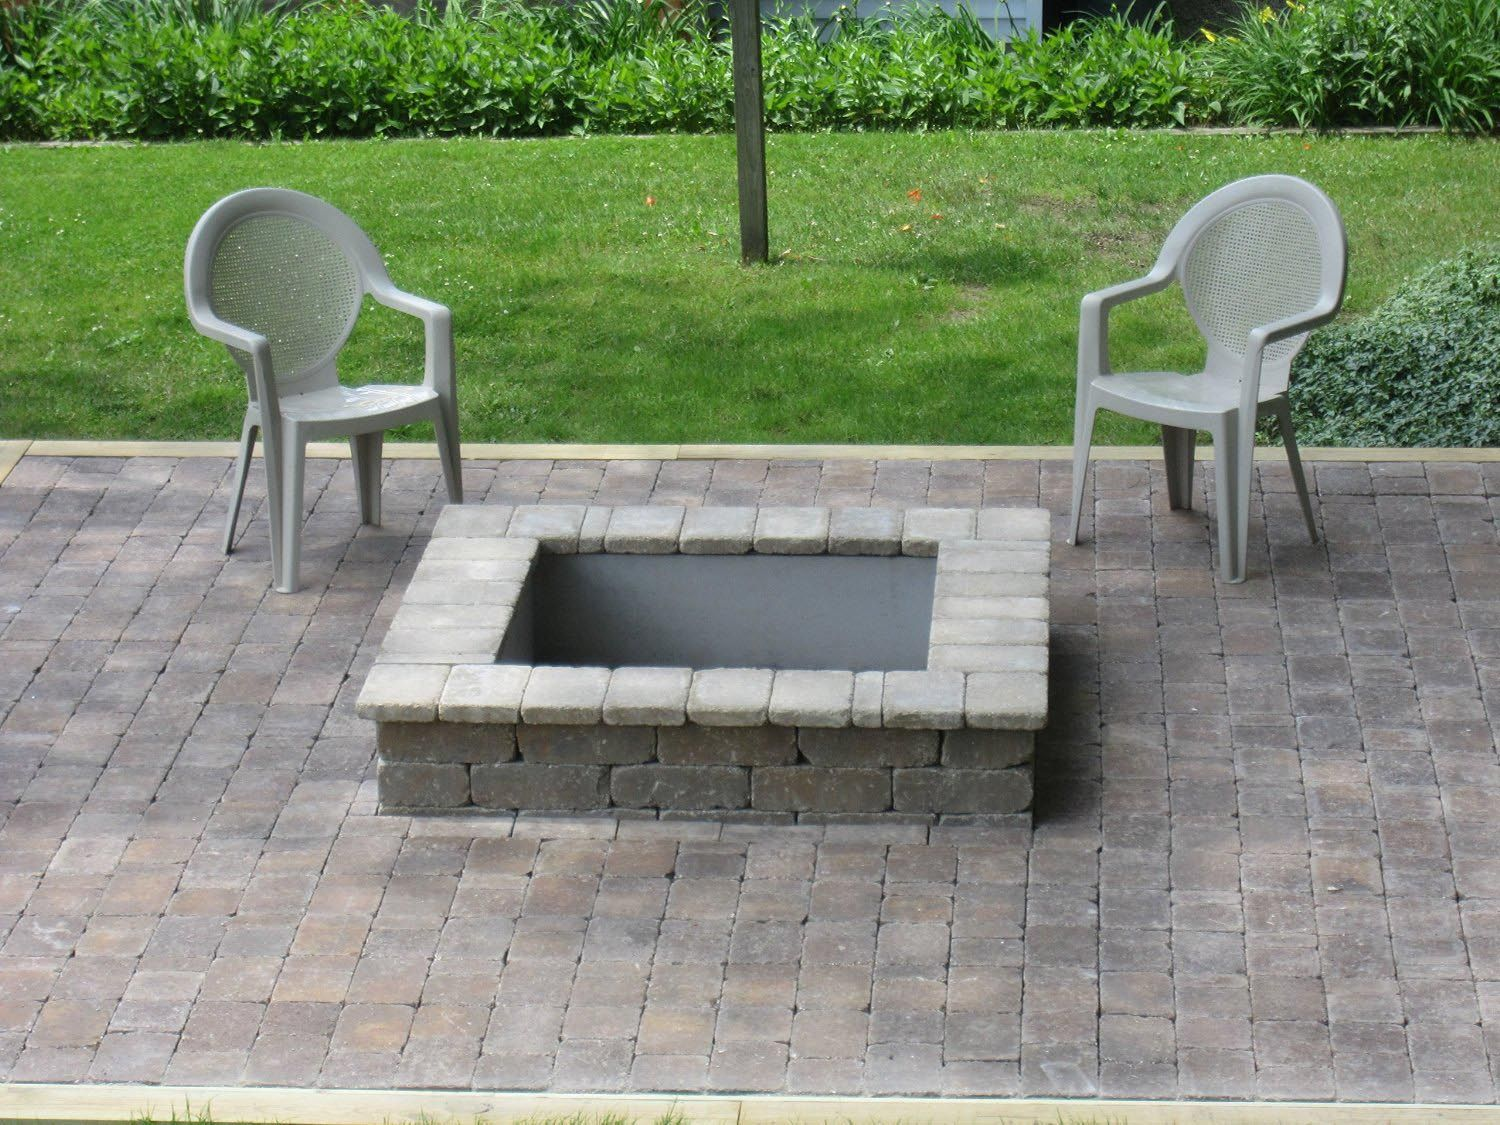 Fire Pit Liners Inserts Part - 19: Fire Pit Square Insert